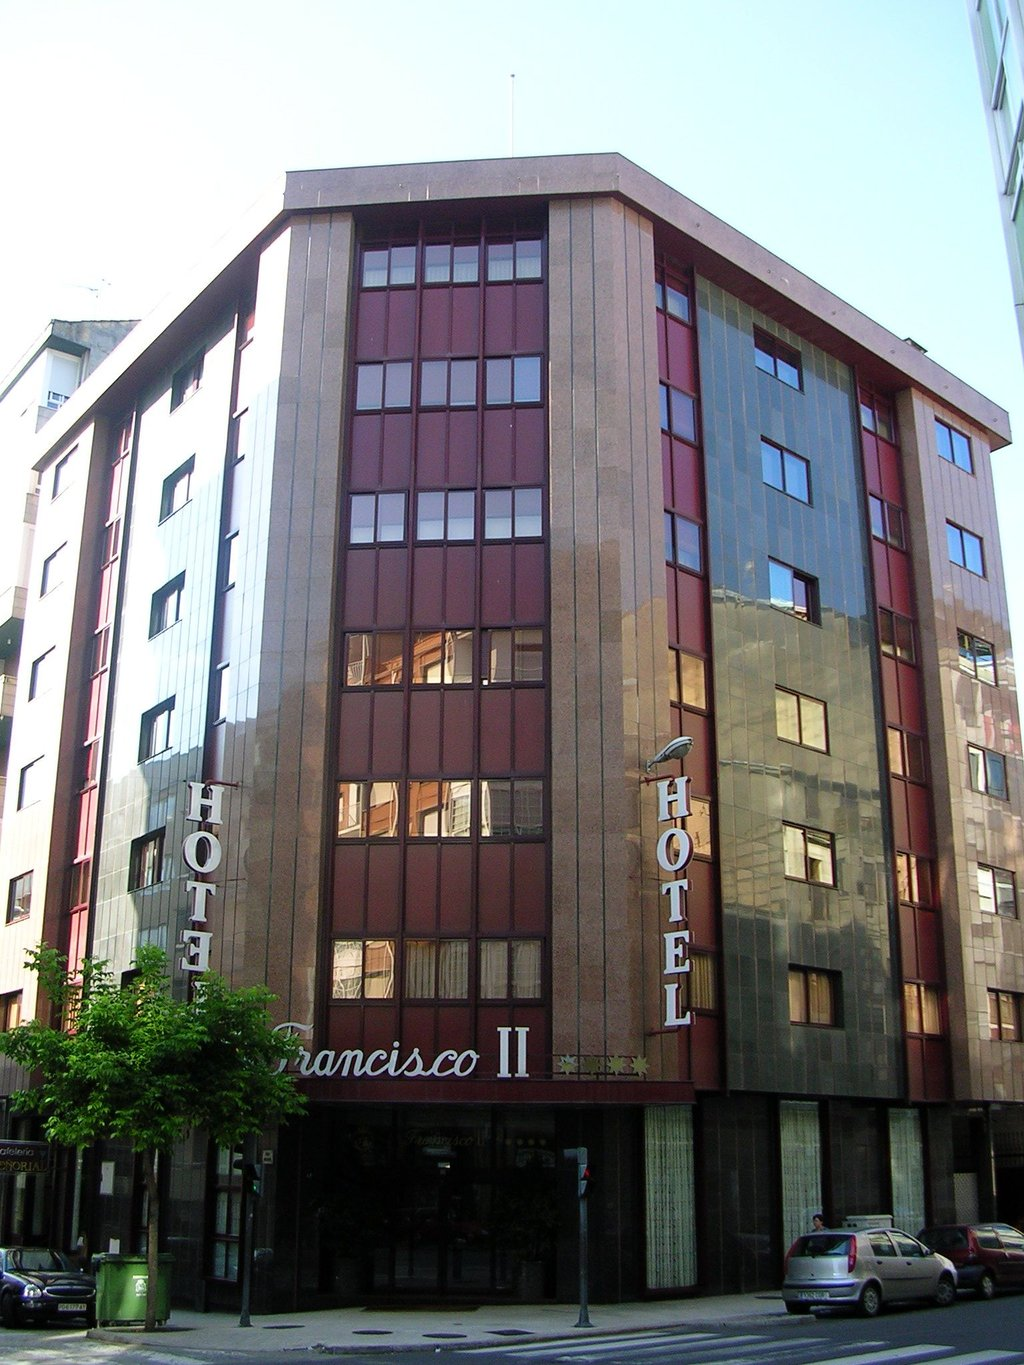 Hotel Francisco II